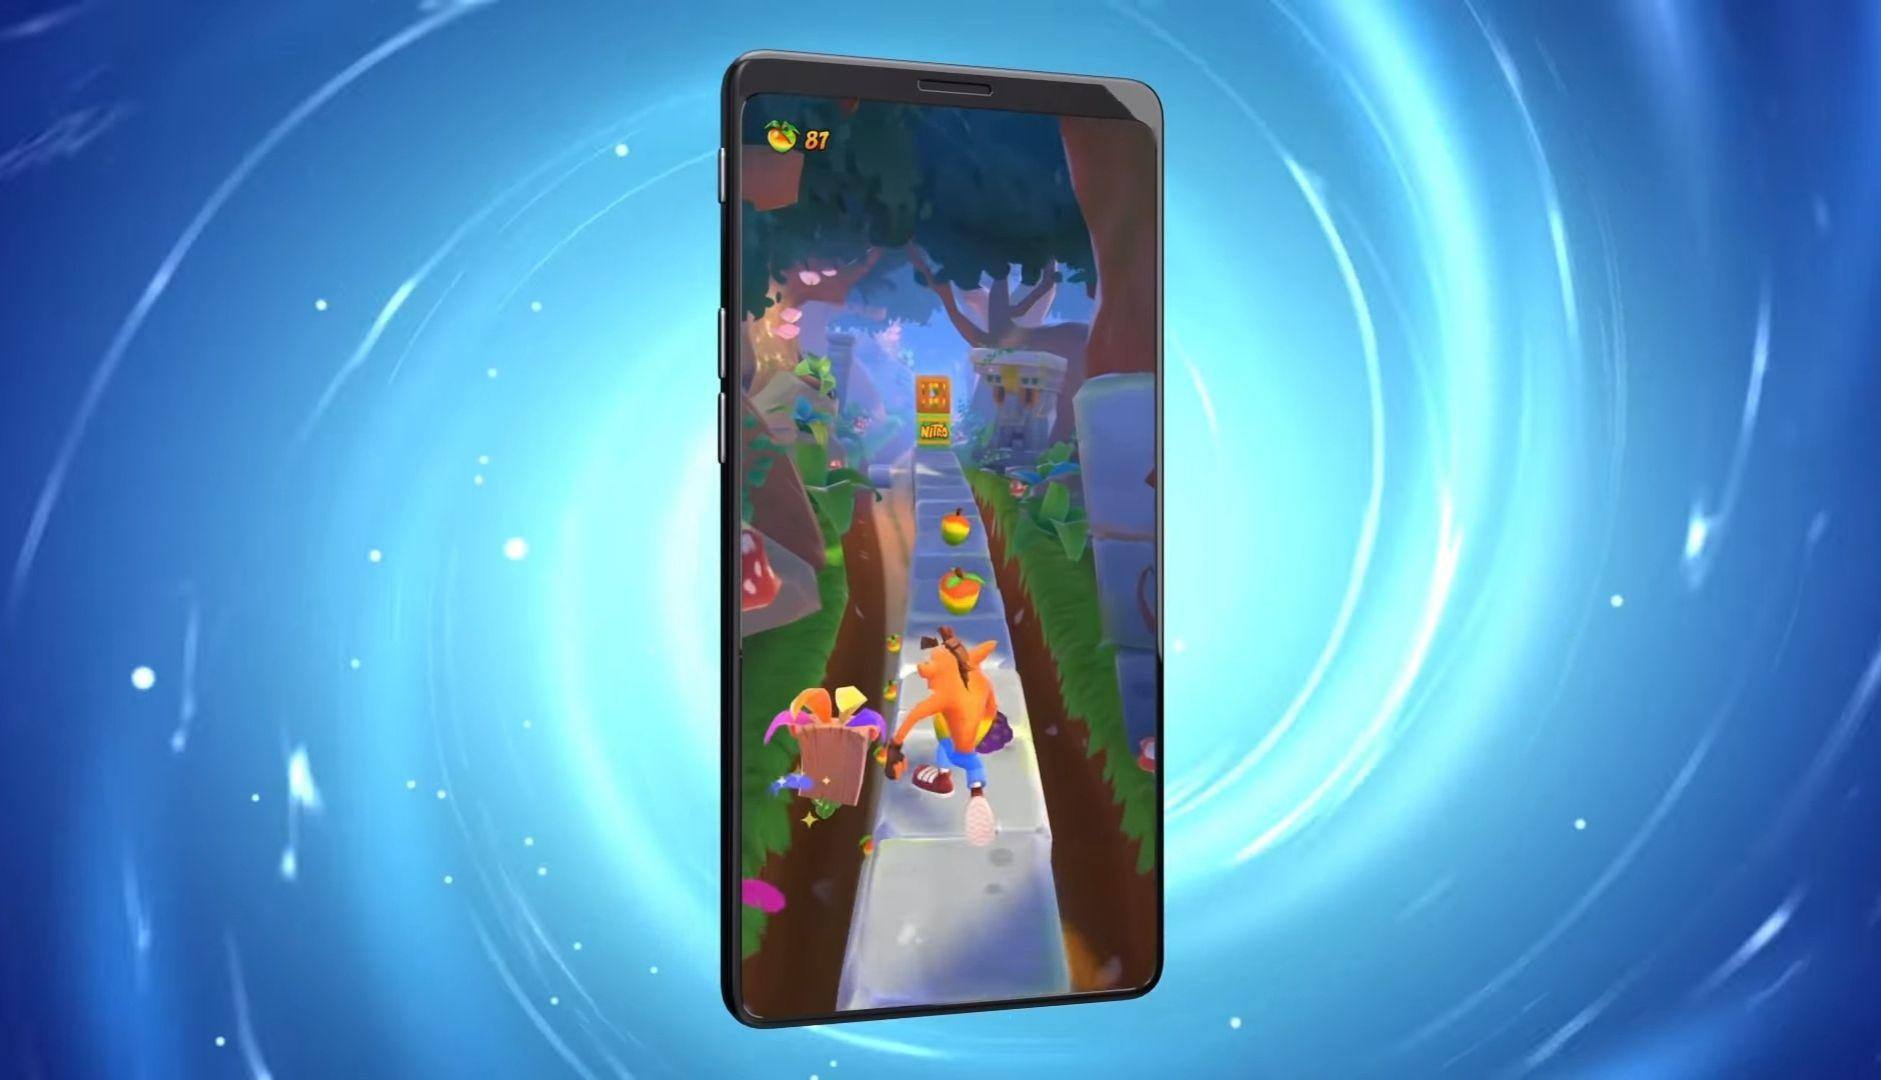 Crash Bandicoot: On the Run! is coming to mobile devices soon thumbnail